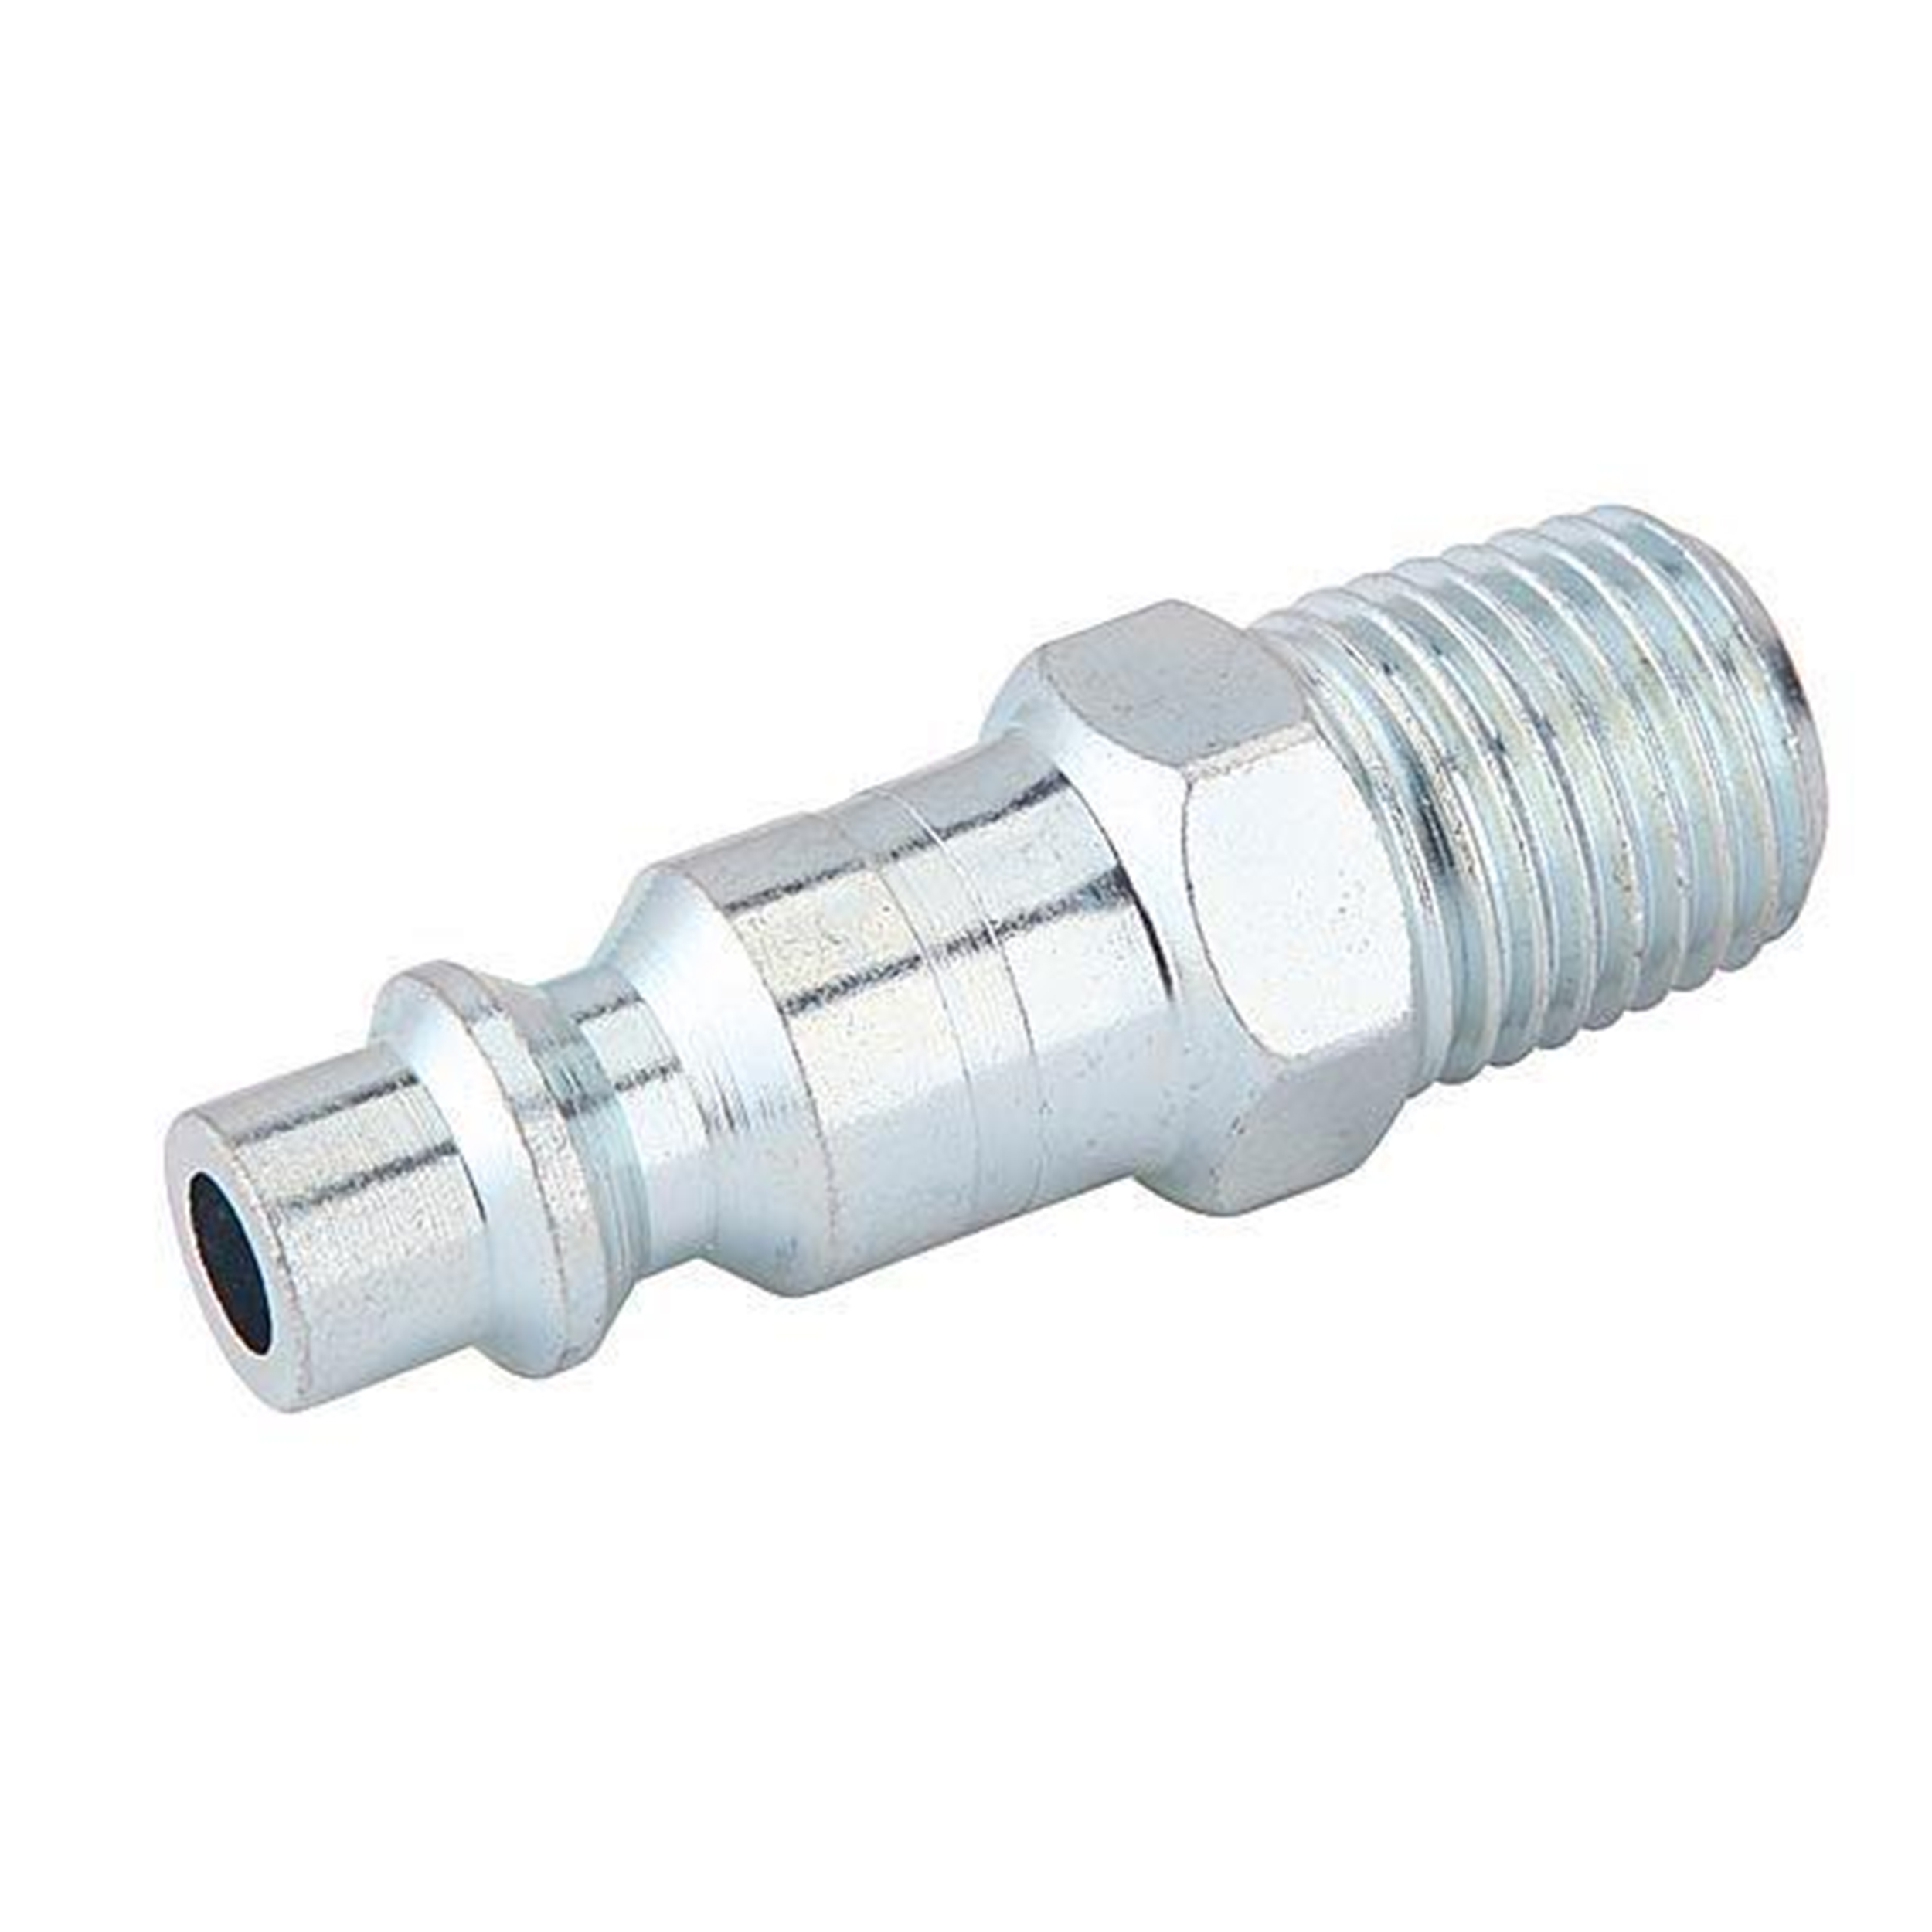 1/4-Inch Industrial Air Plug With Male 1/4-Inch NPT